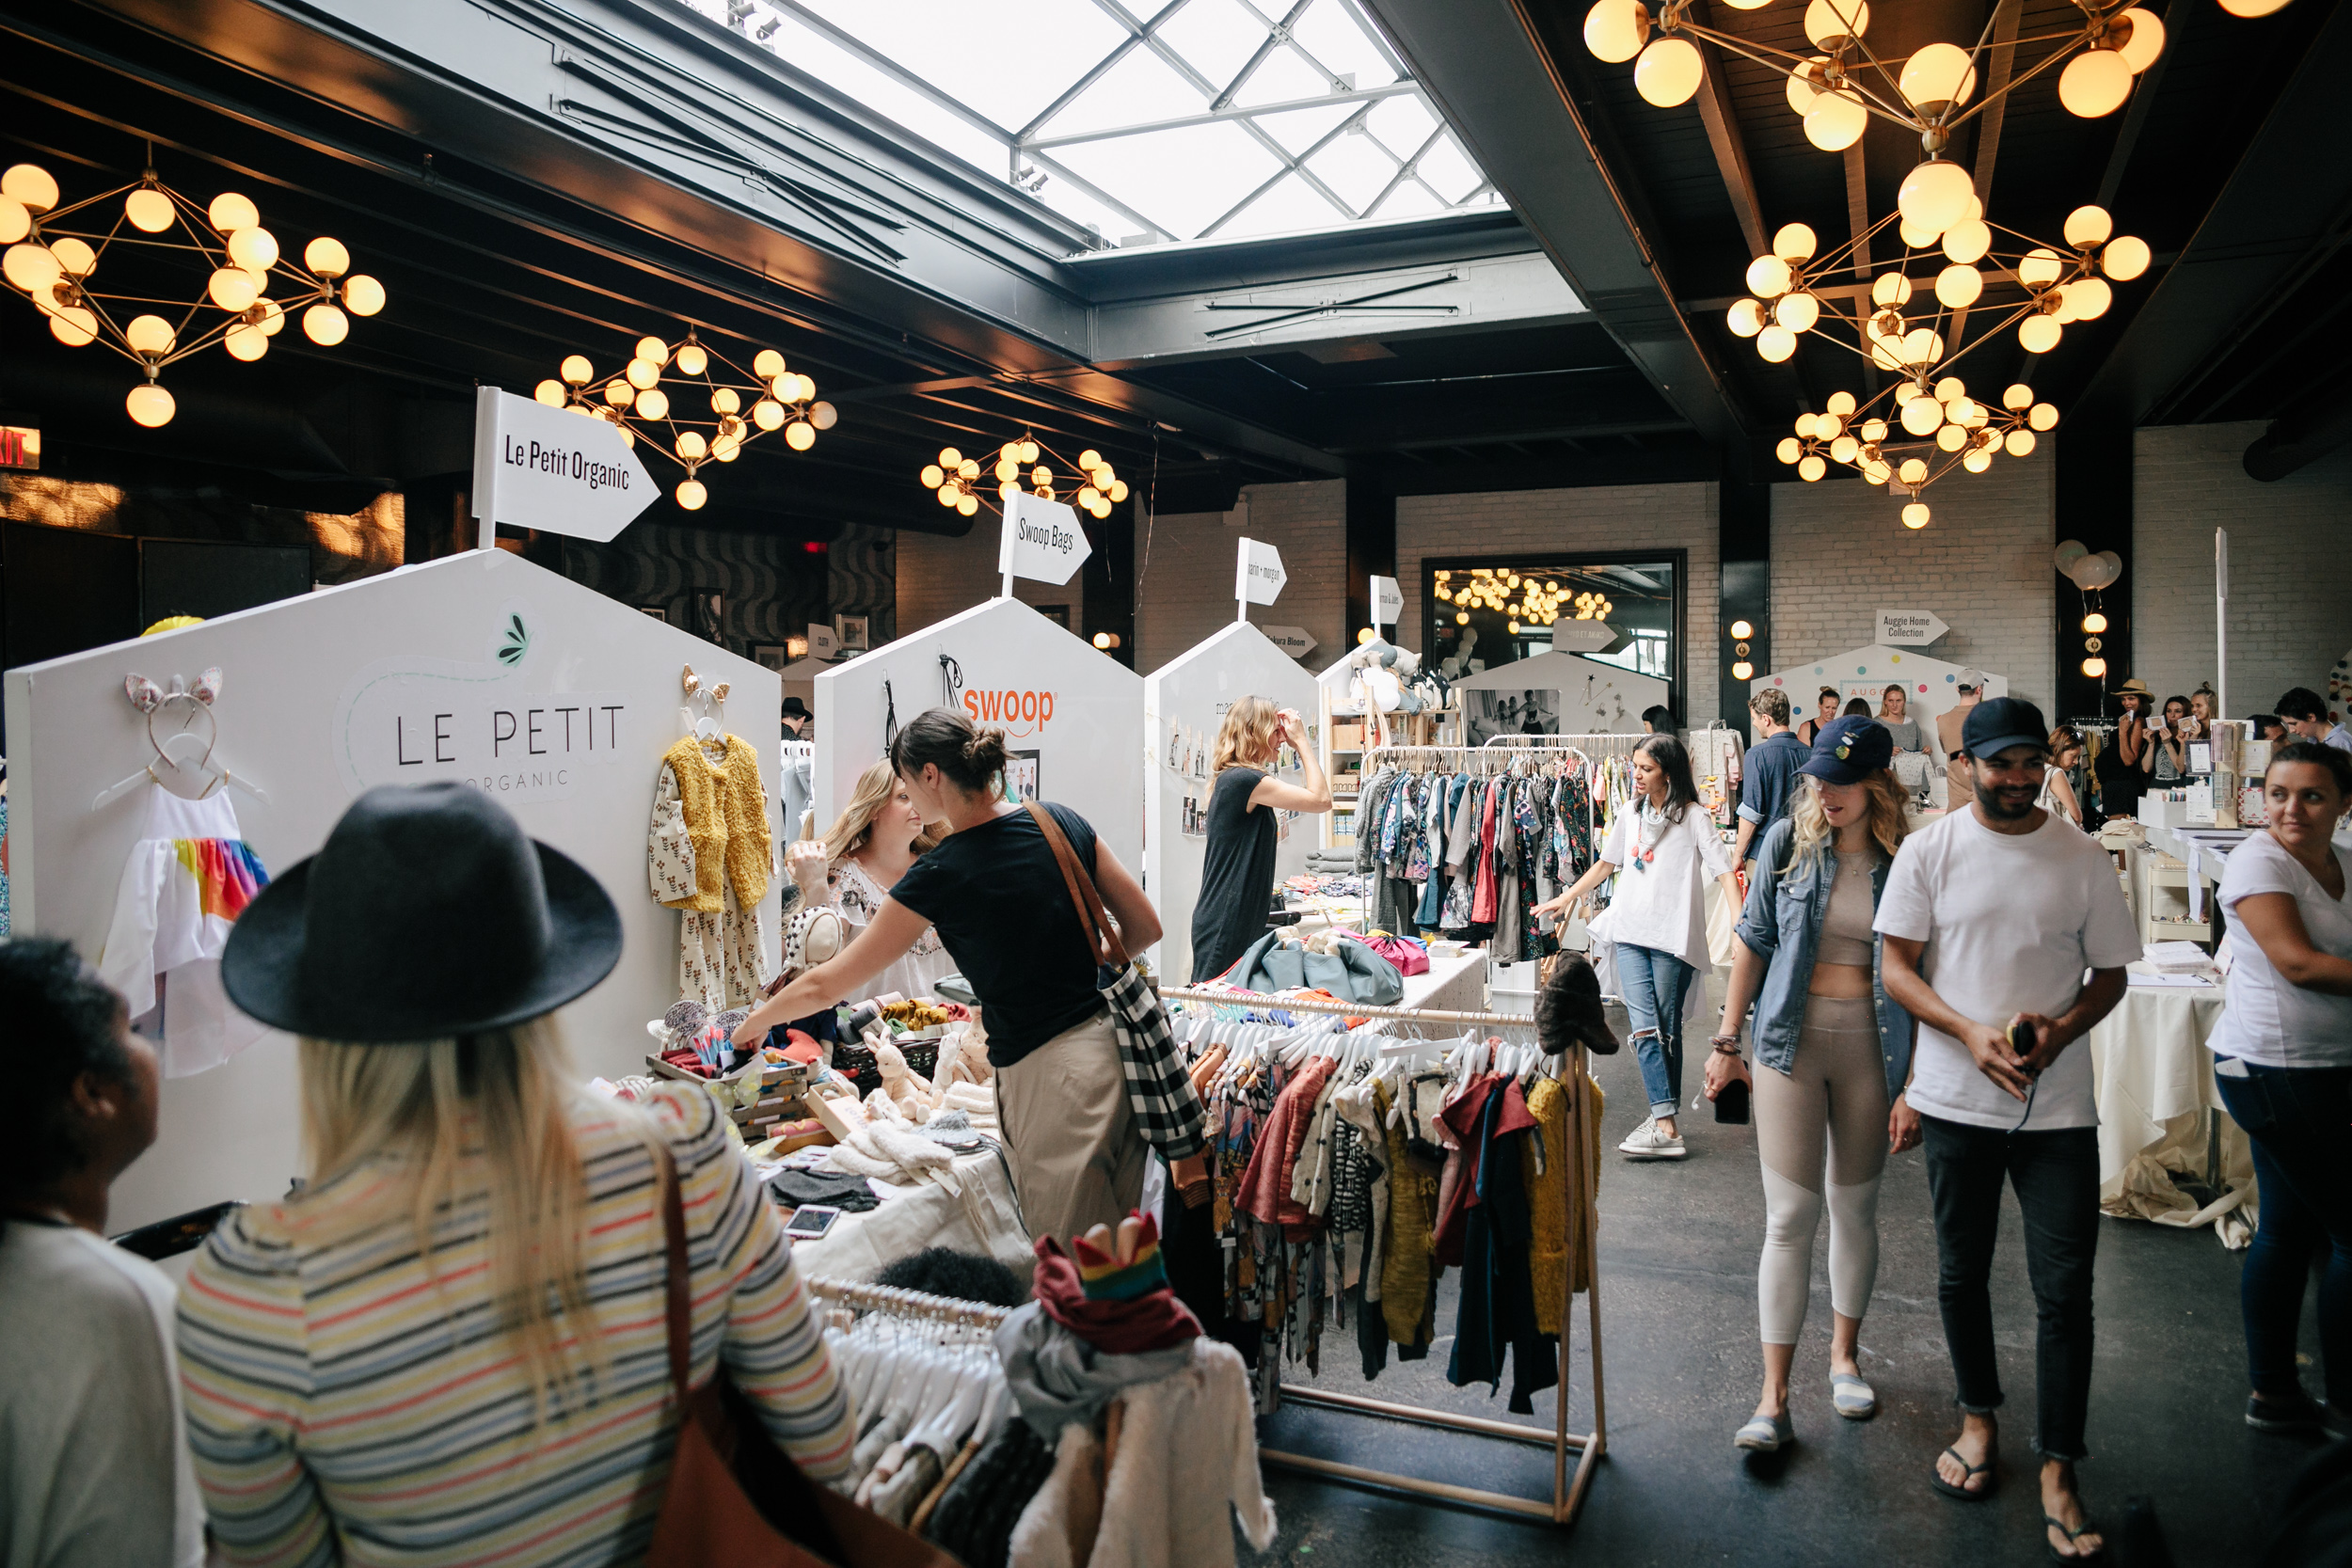 20170917-The-ShopUp-NYC-Day-of-Selects-37.jpg